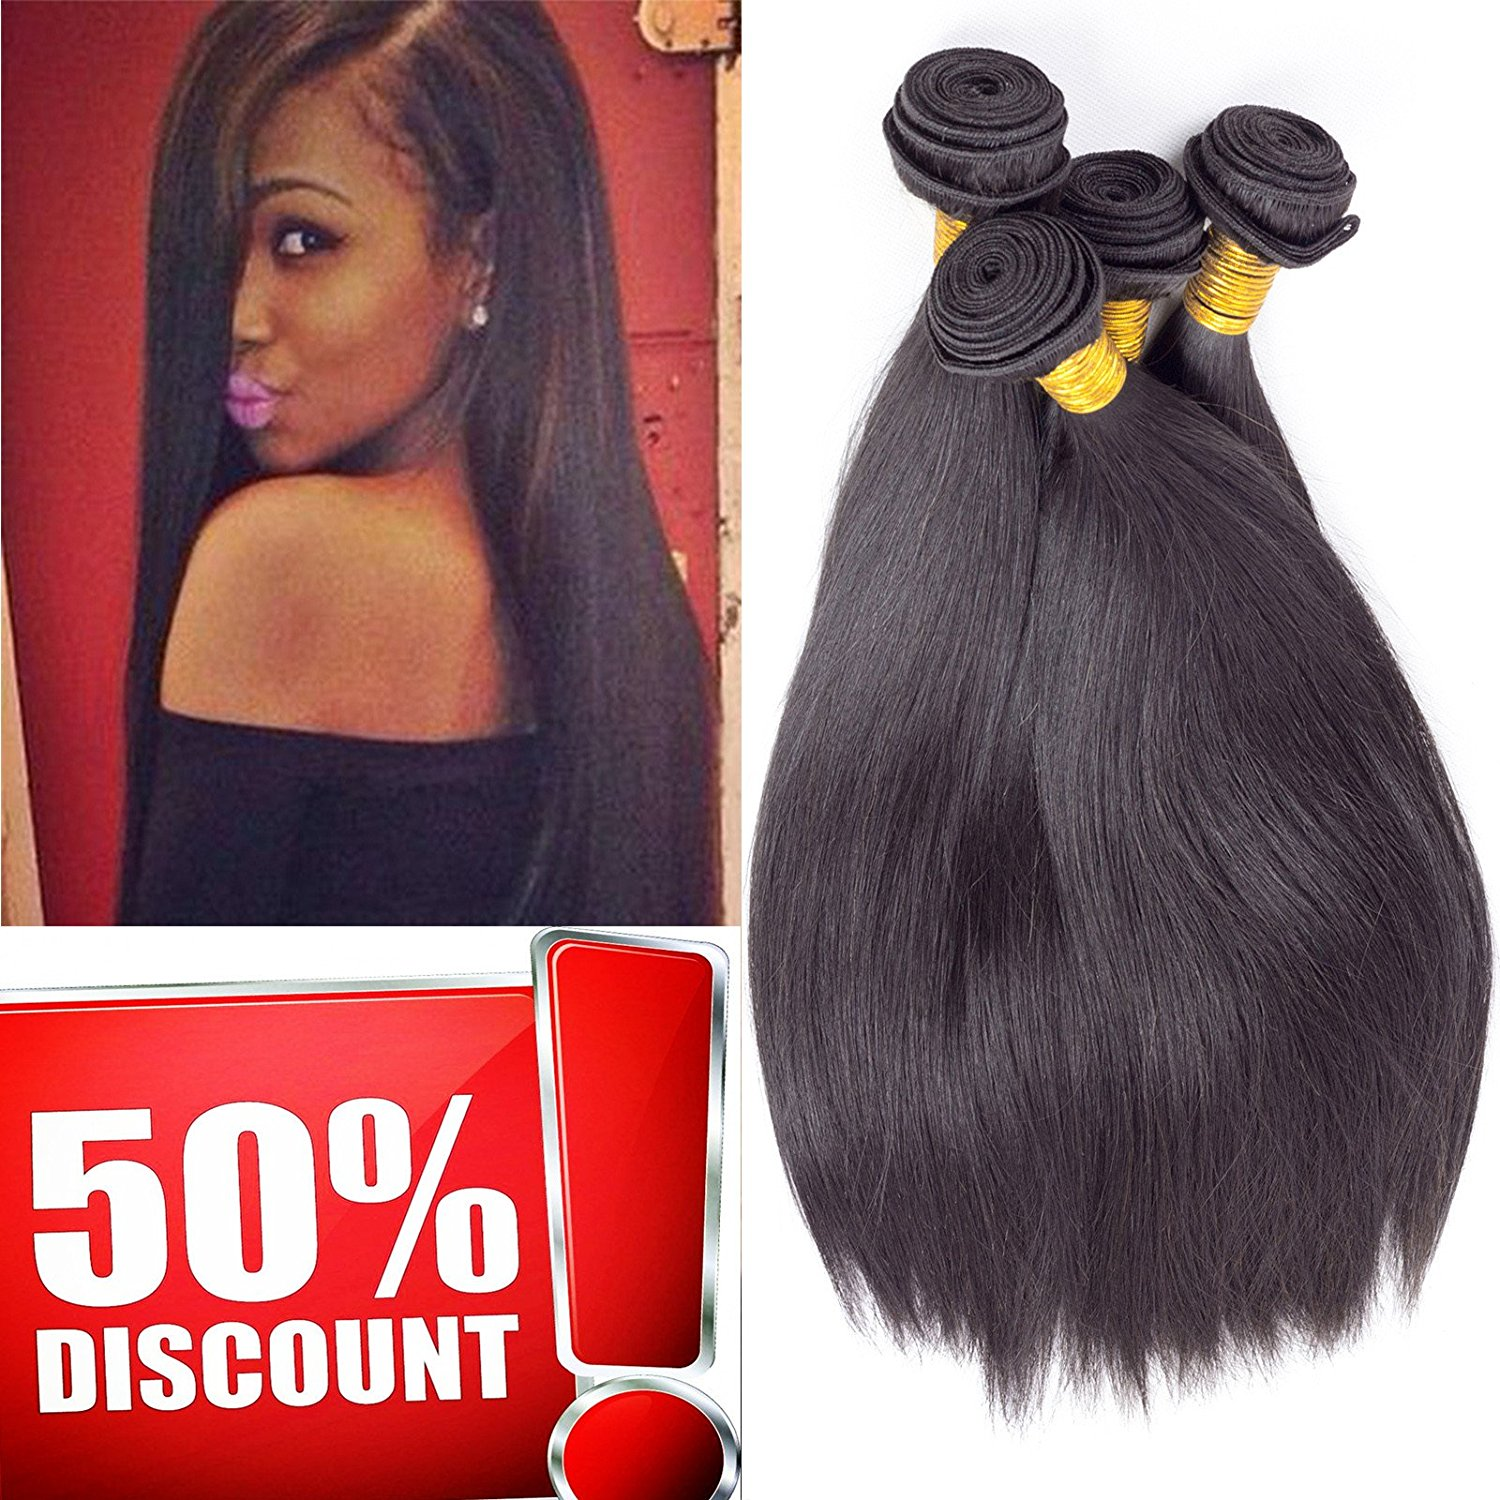 cheap 12 inch hair styles, find 12 inch hair styles deals on